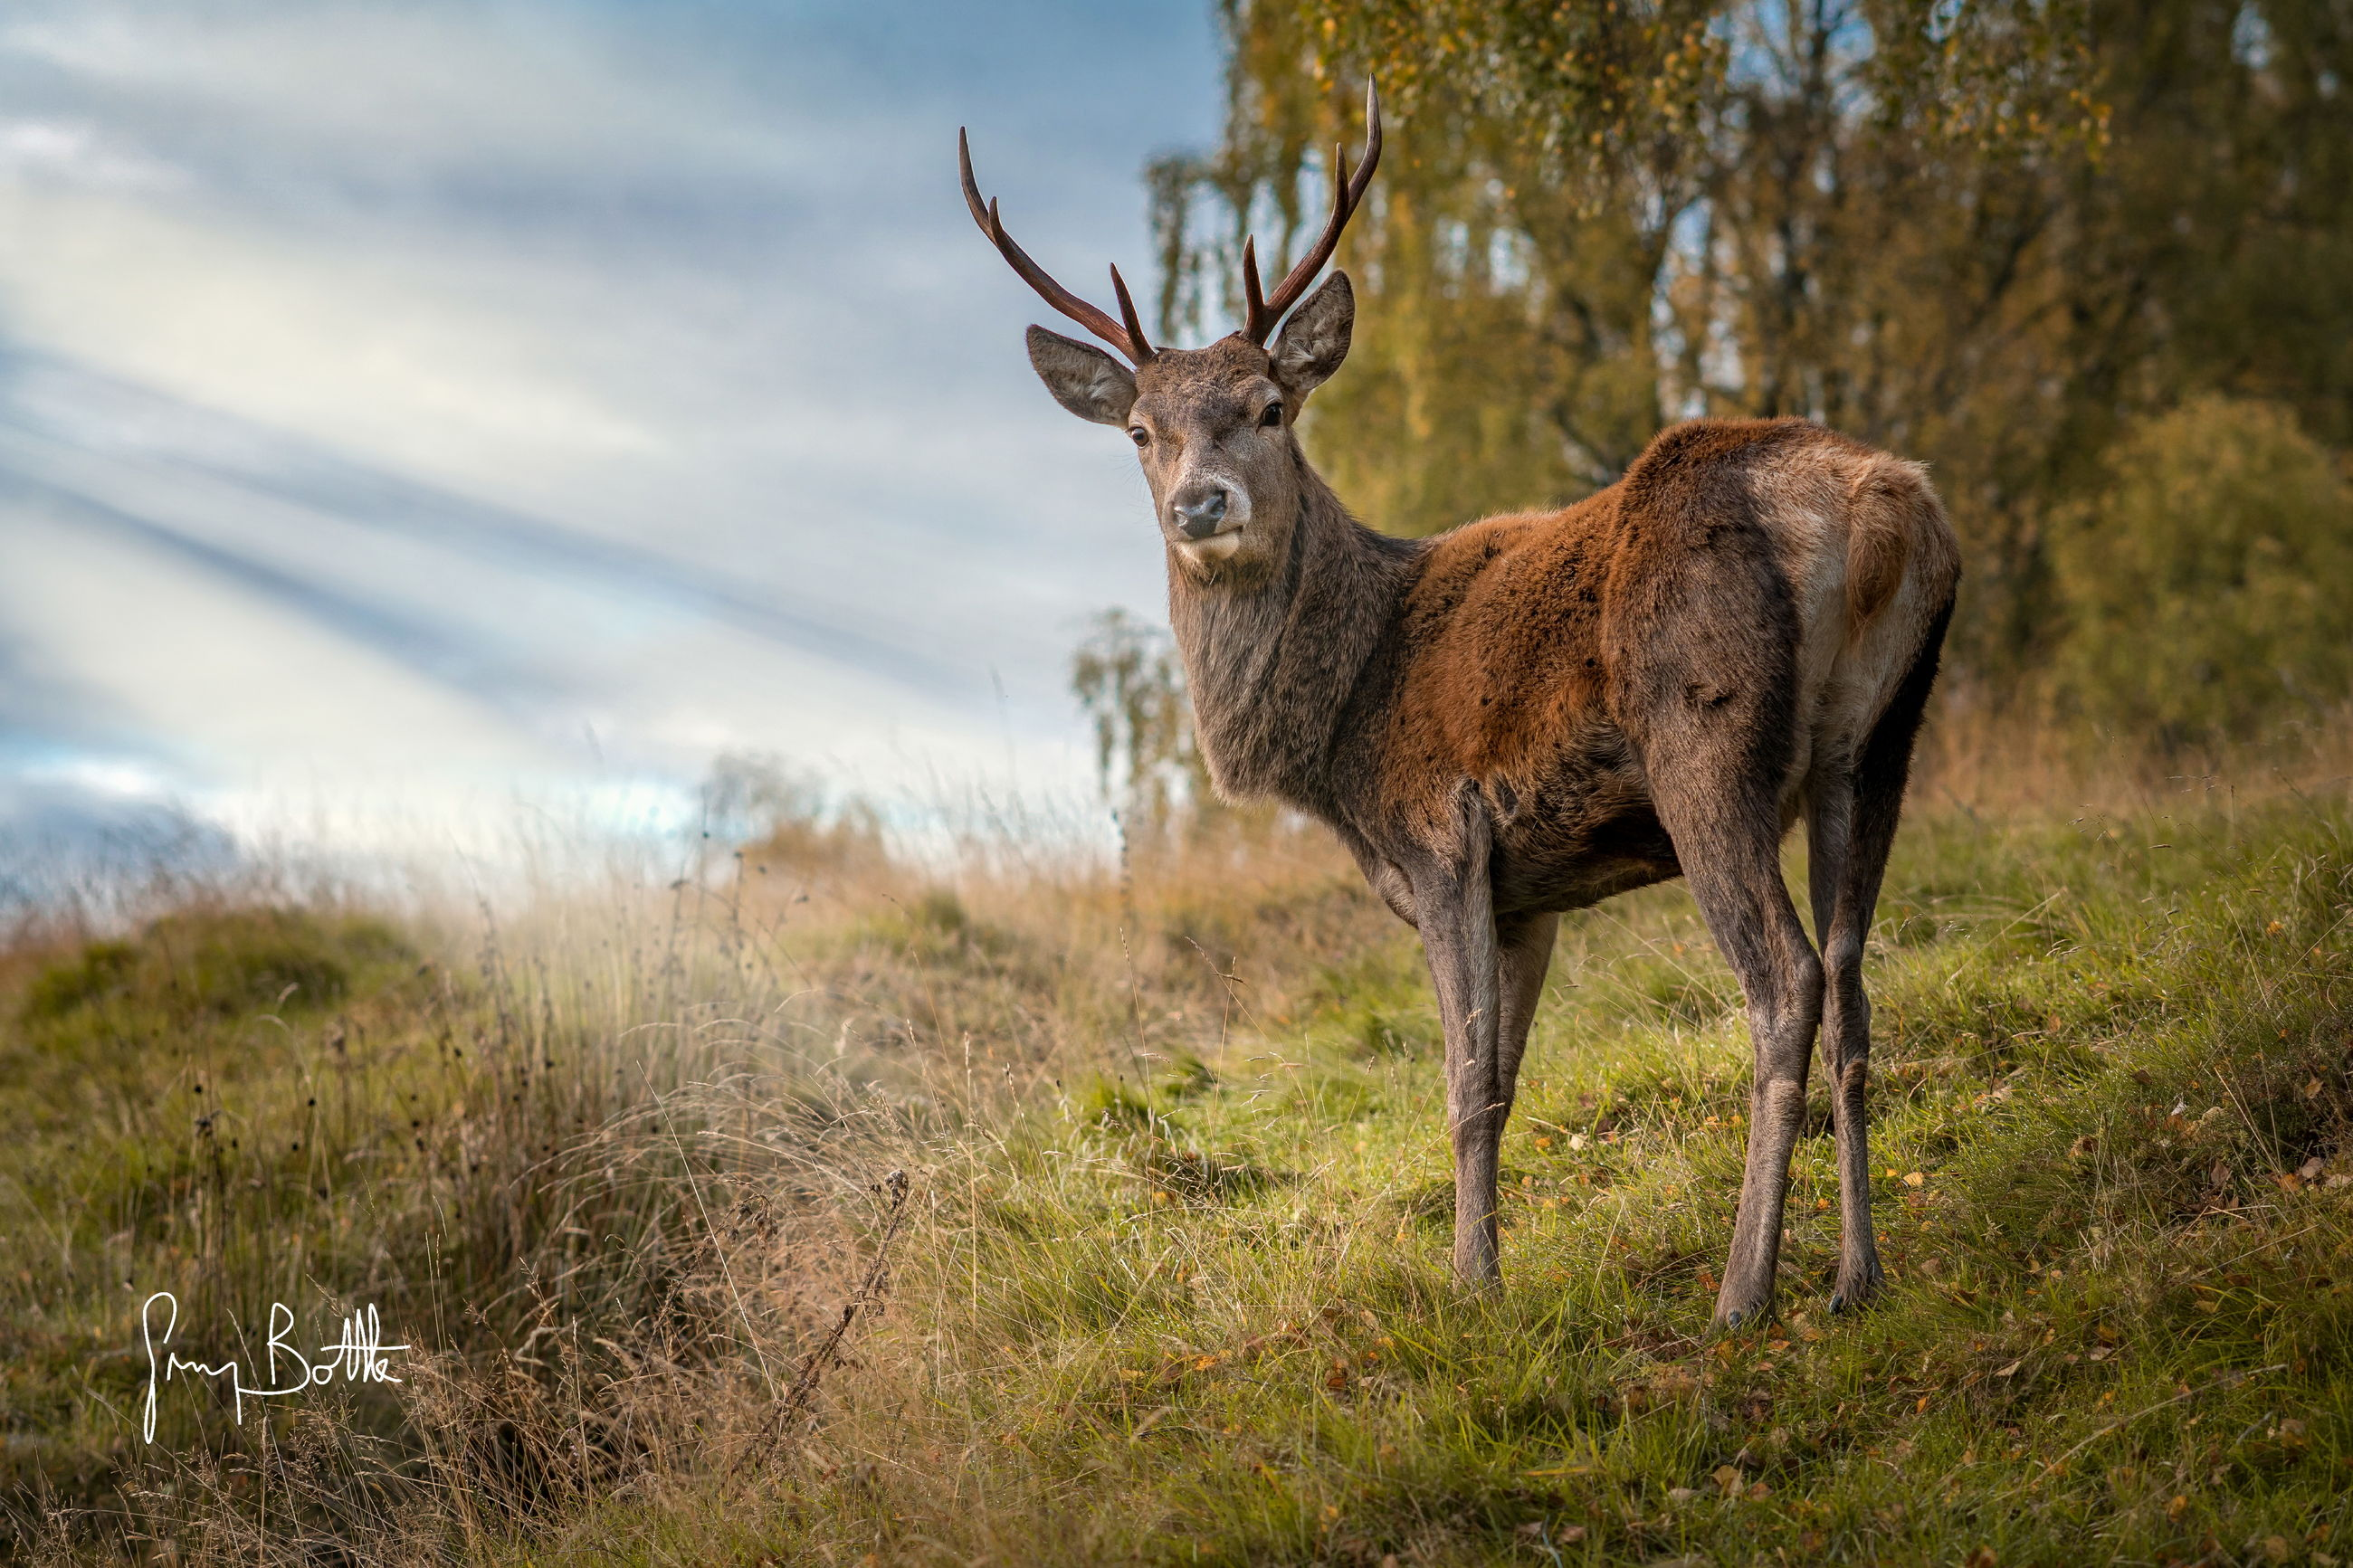 grass, animals in the wild, animal wildlife, deer, nature, one animal, field, animal themes, mammal, no people, outdoors, day, looking at camera, antler, portrait, standing, stag, beauty in nature, sky